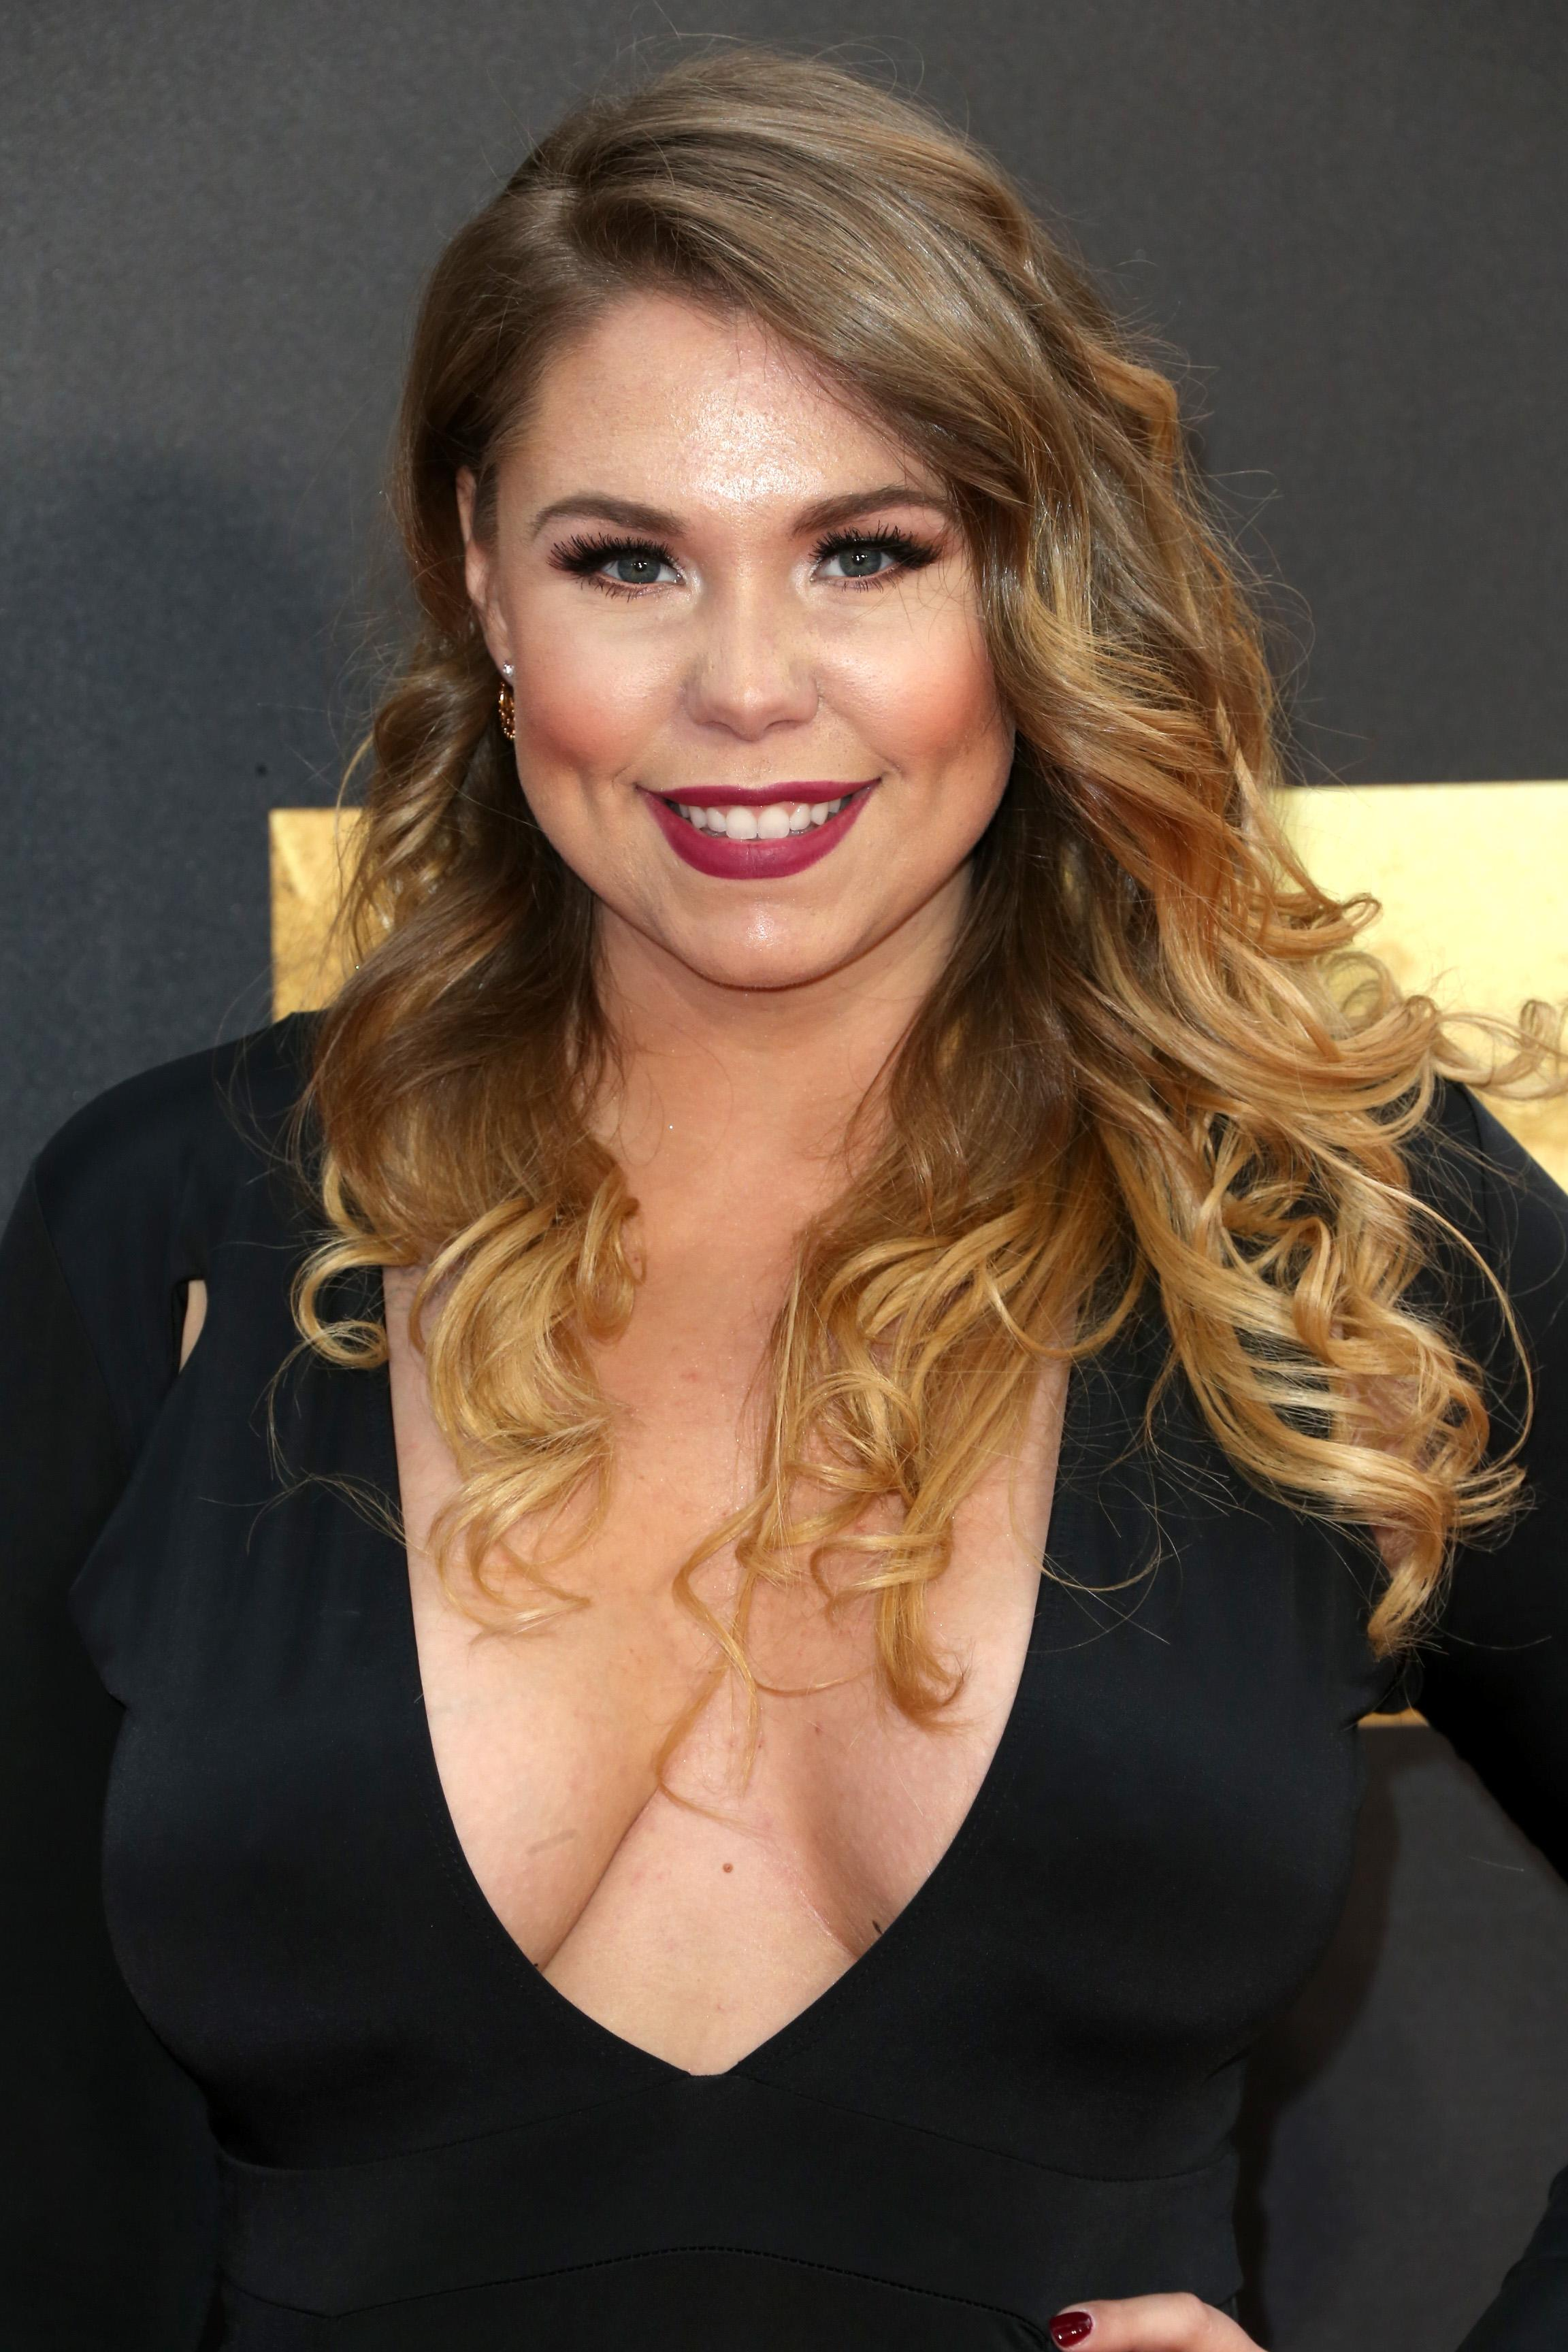 kailyn lowry height